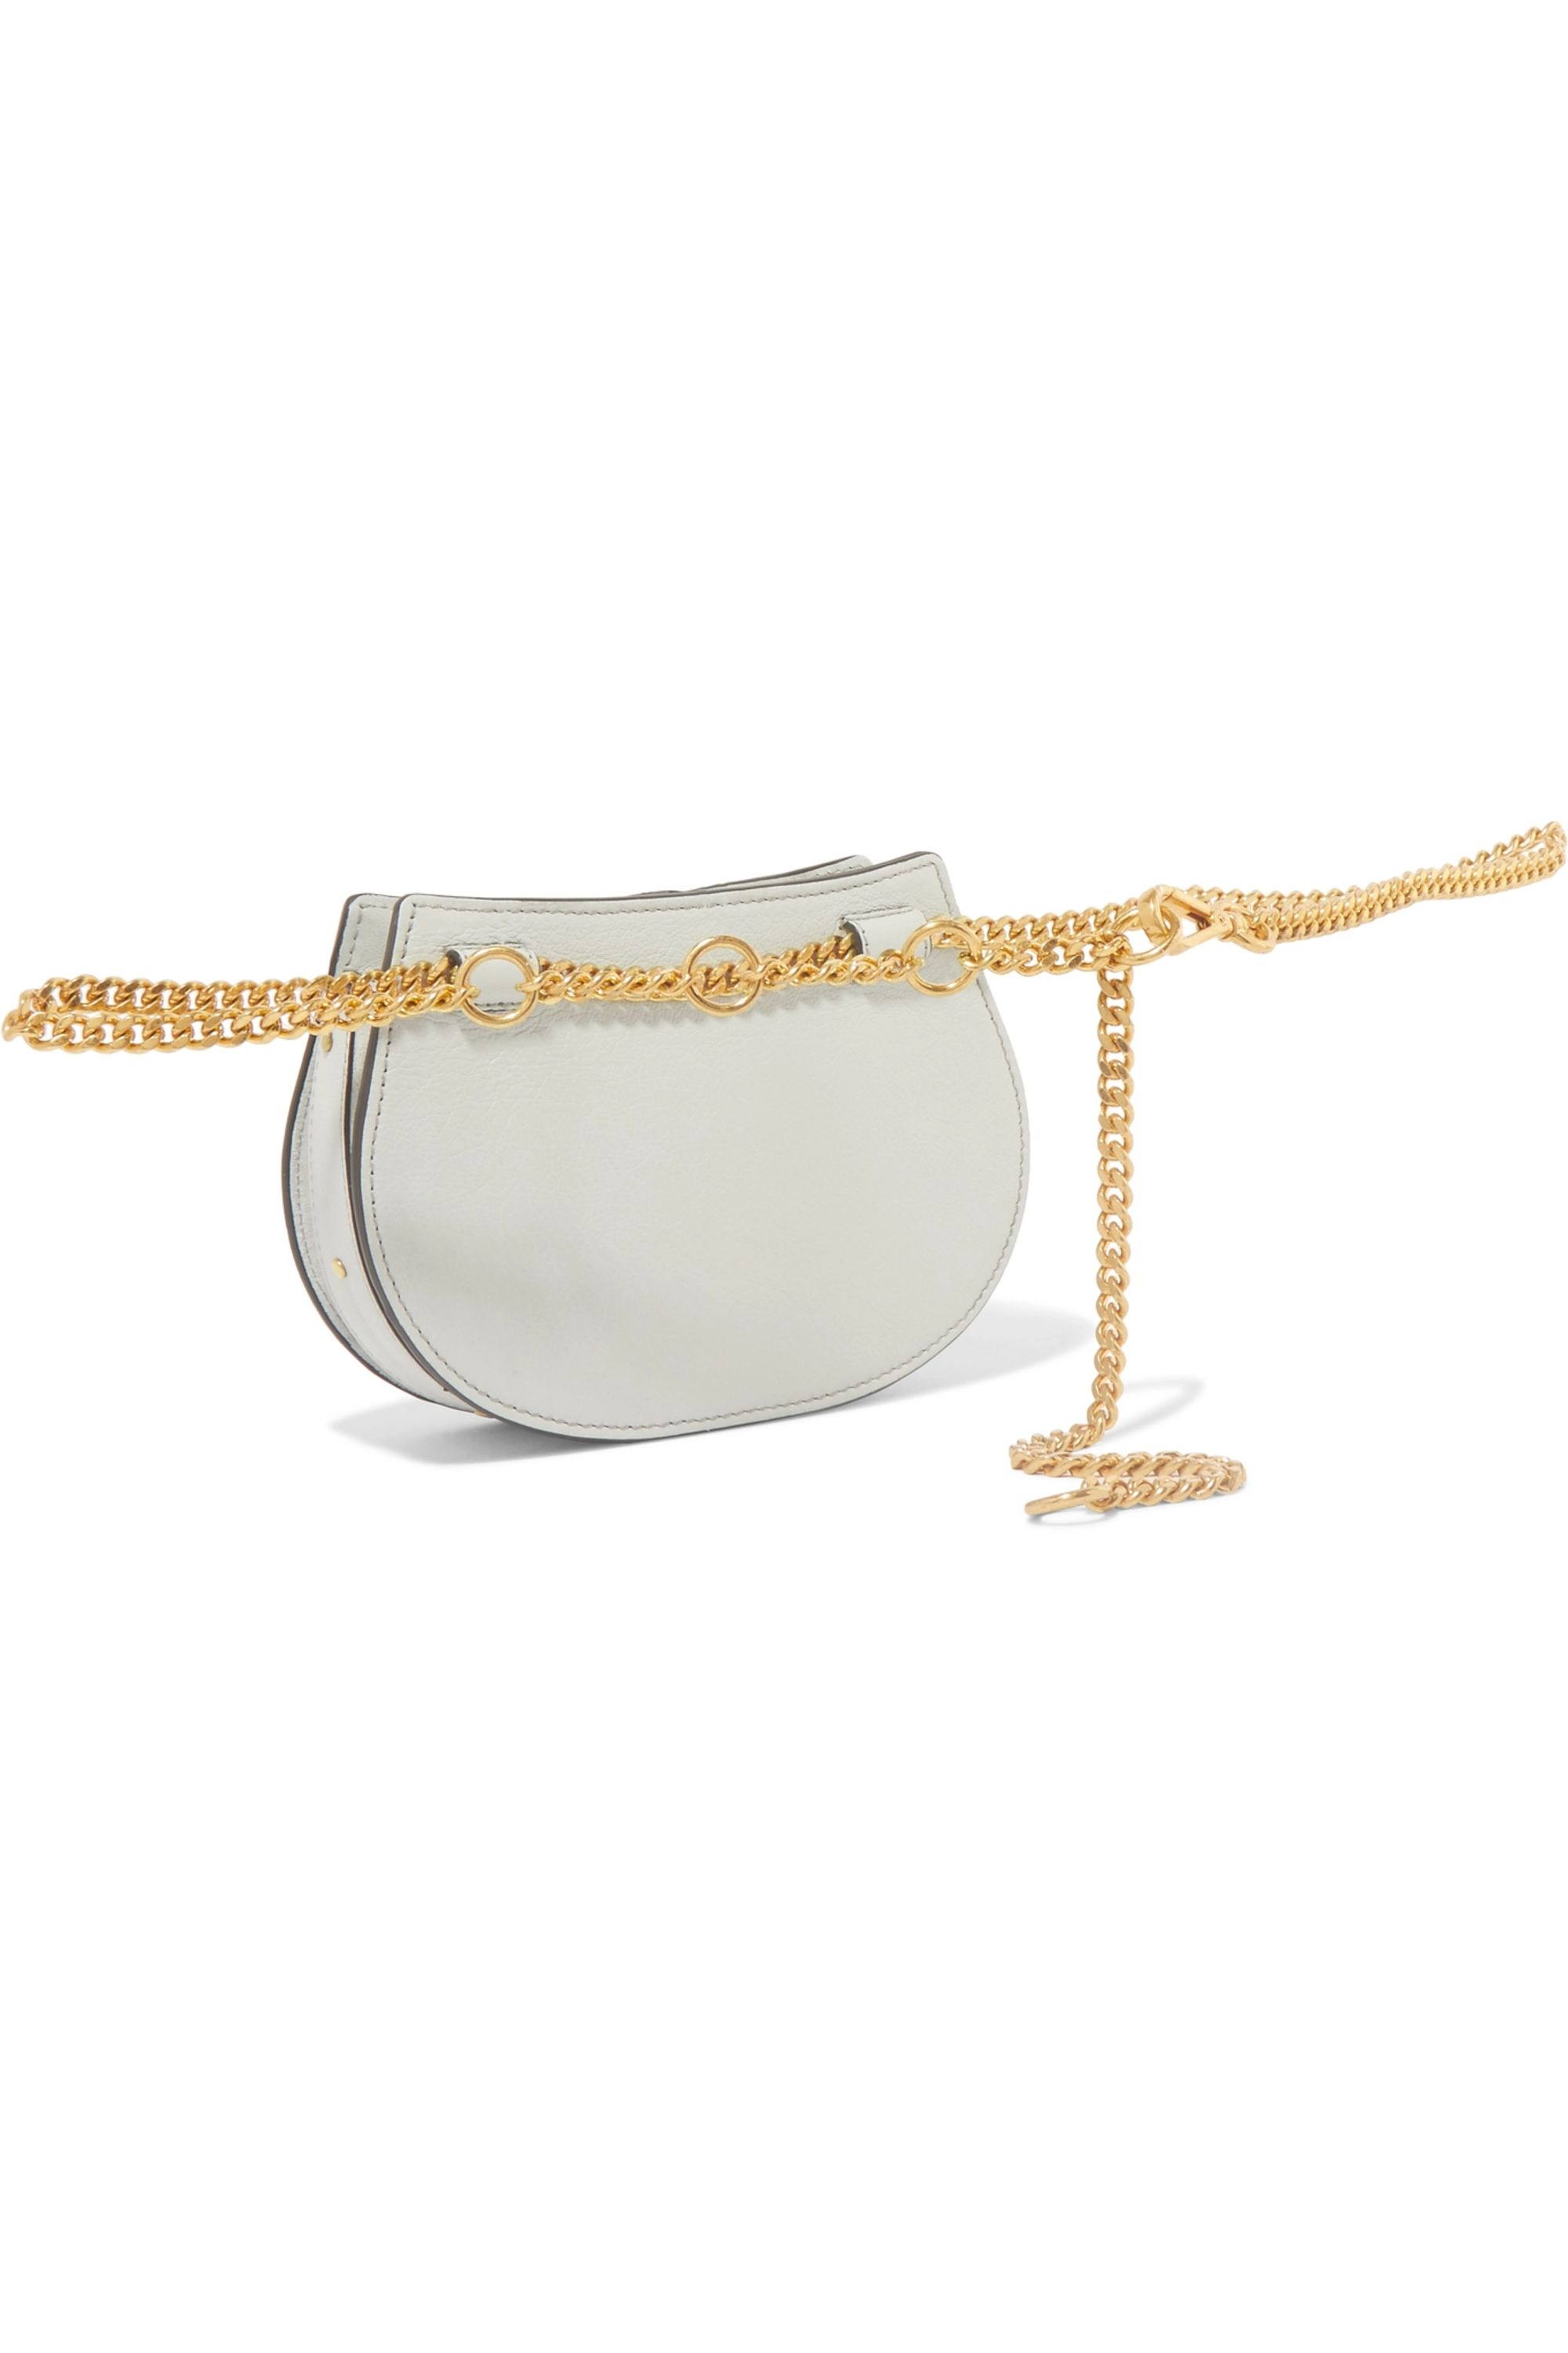 Chloé Pixie mini suede and leather belt bag